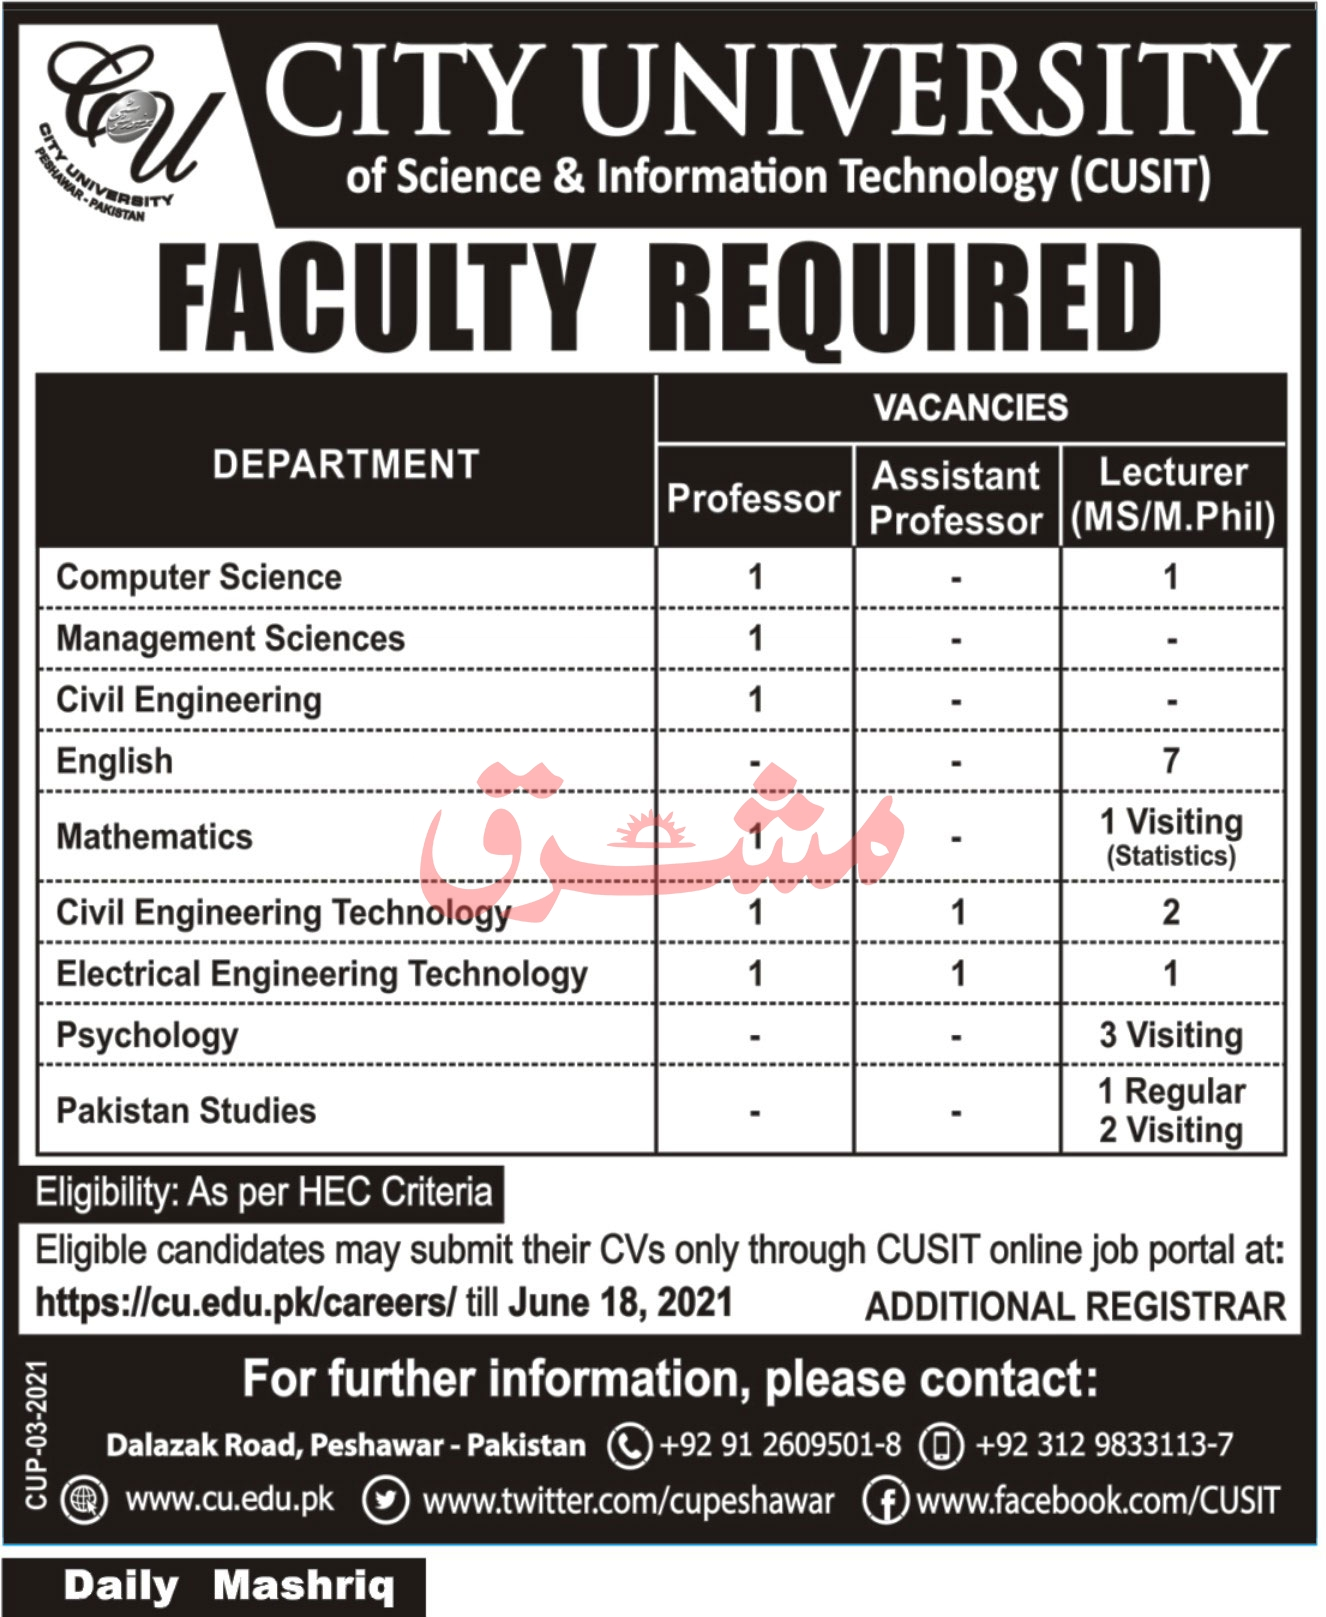 CUSIT Jobs June 2021-City University Of Science And Technology